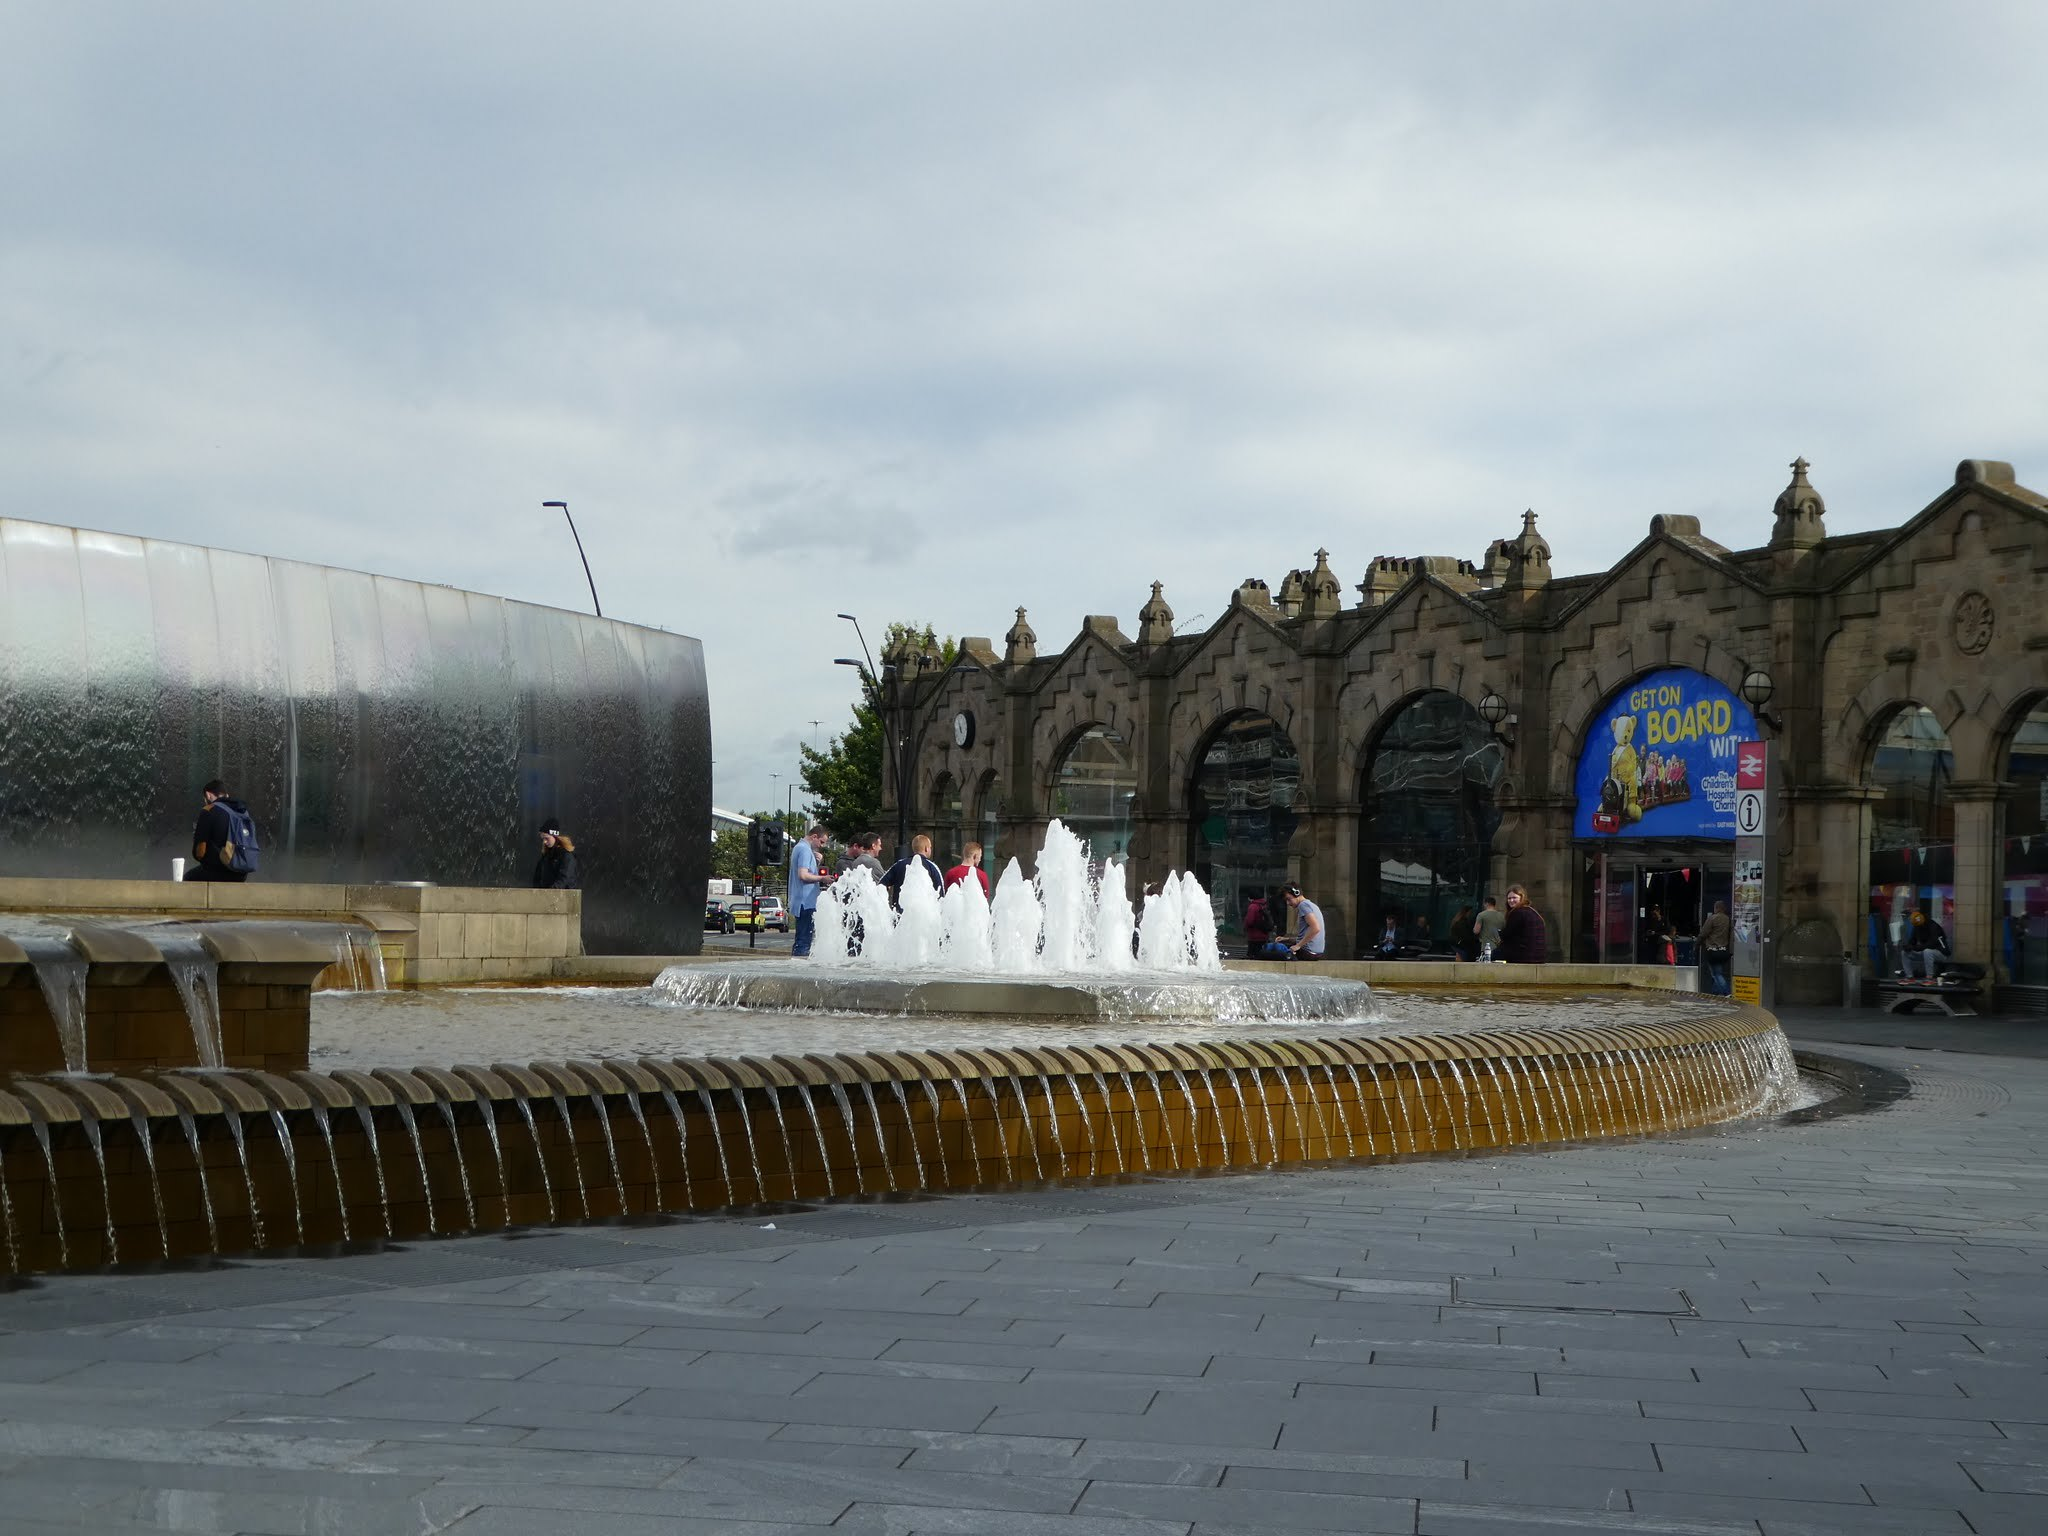 Sheaf Square, Sheffield